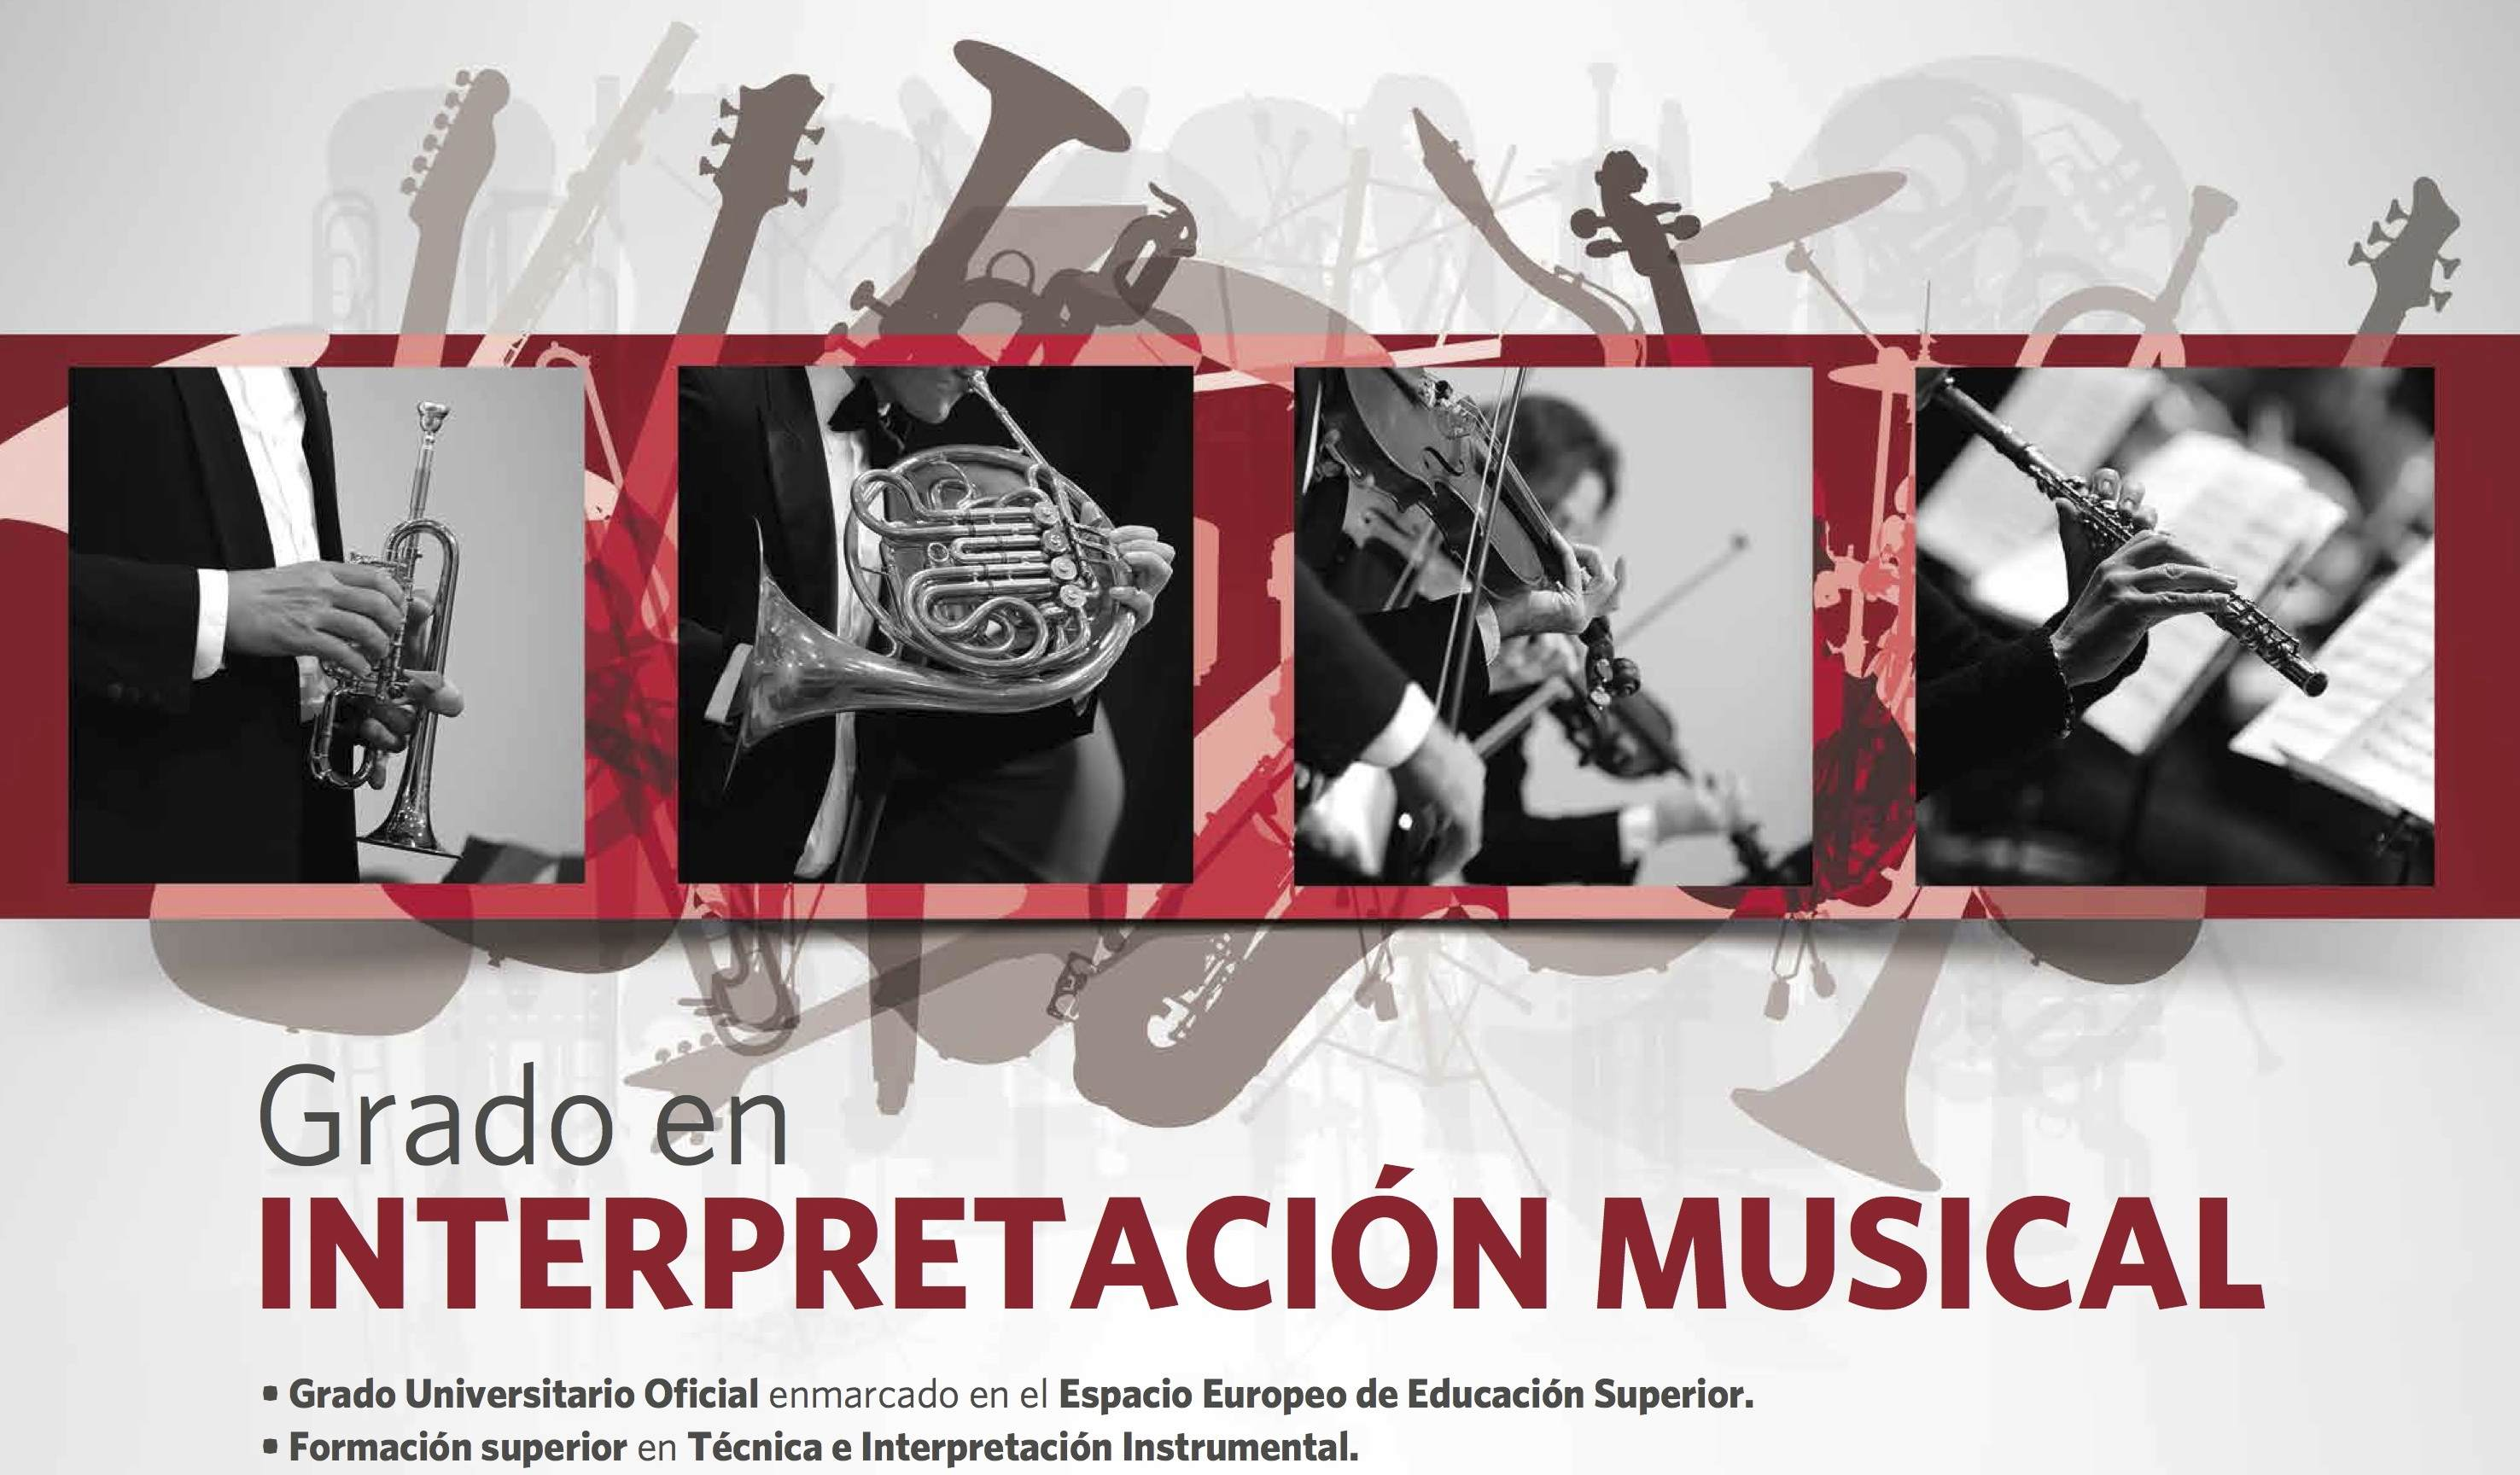 Grado en Interpretación Musical